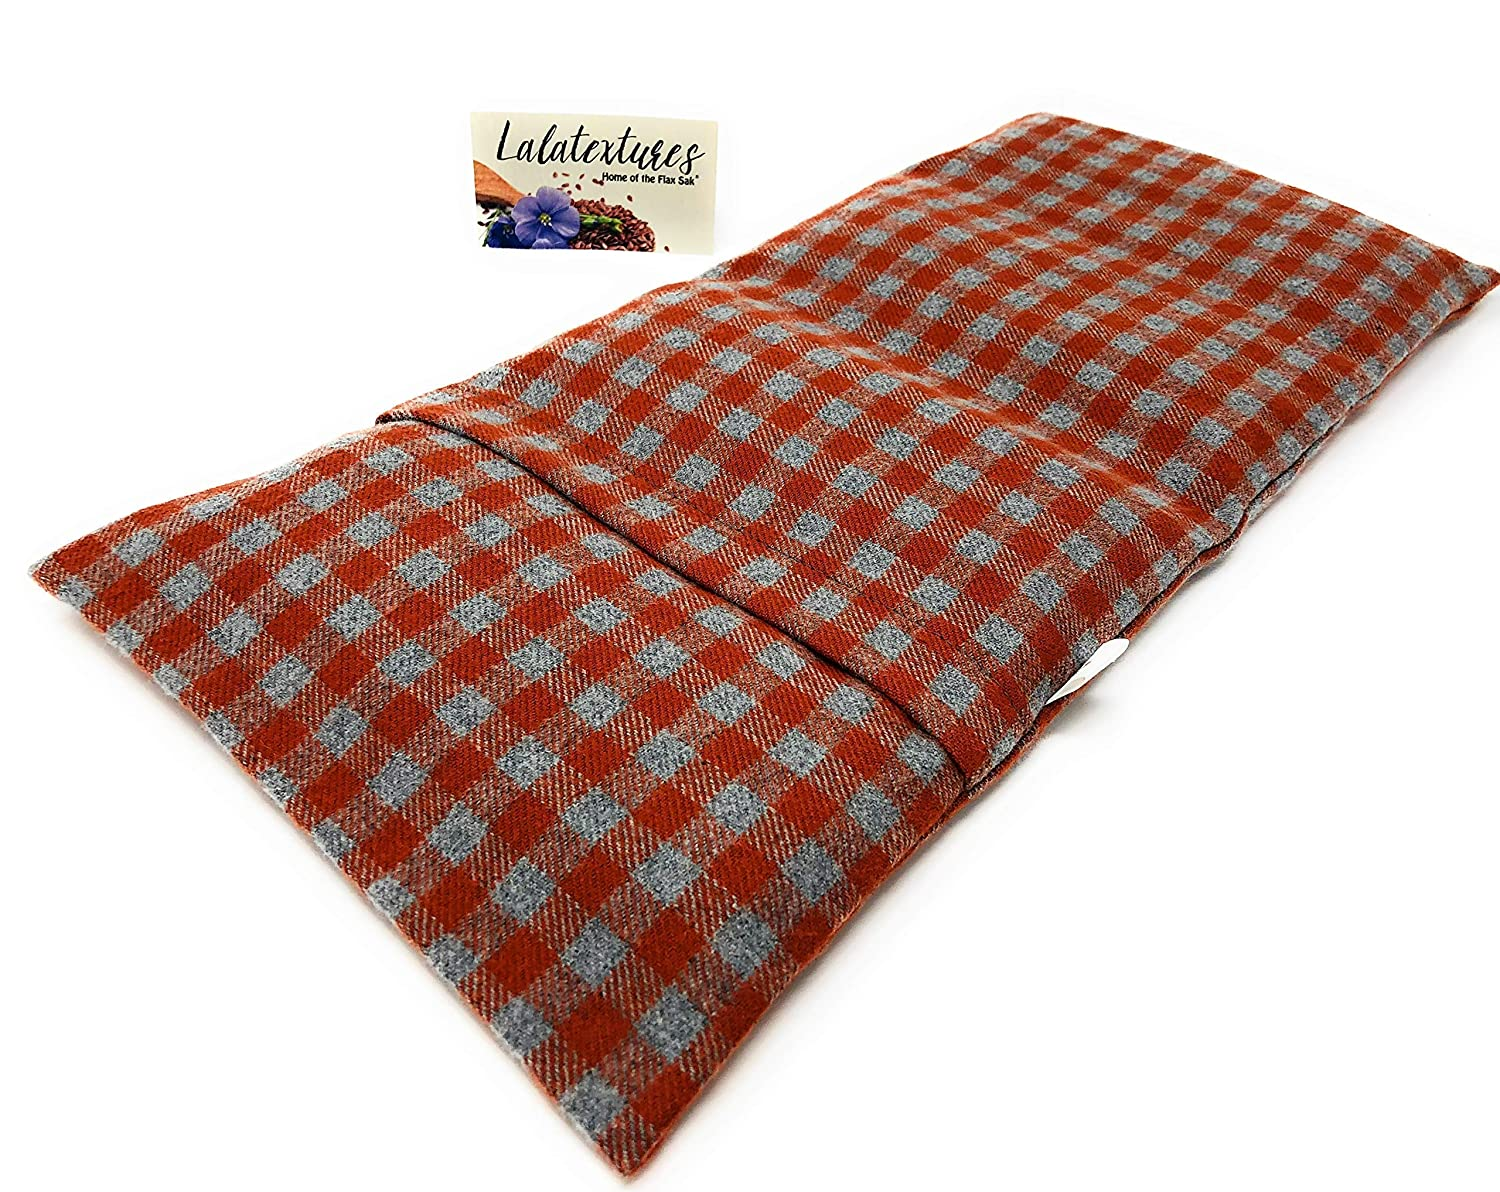 Christmas Gifts Under 40 - Large Heating Pad Microwavable - Cold Pack - Flax Hot Bag - Neck Pain Relief - Unscented - Pumpkin and Grey Plaid by Flax Sak Handmade in the U.S.A